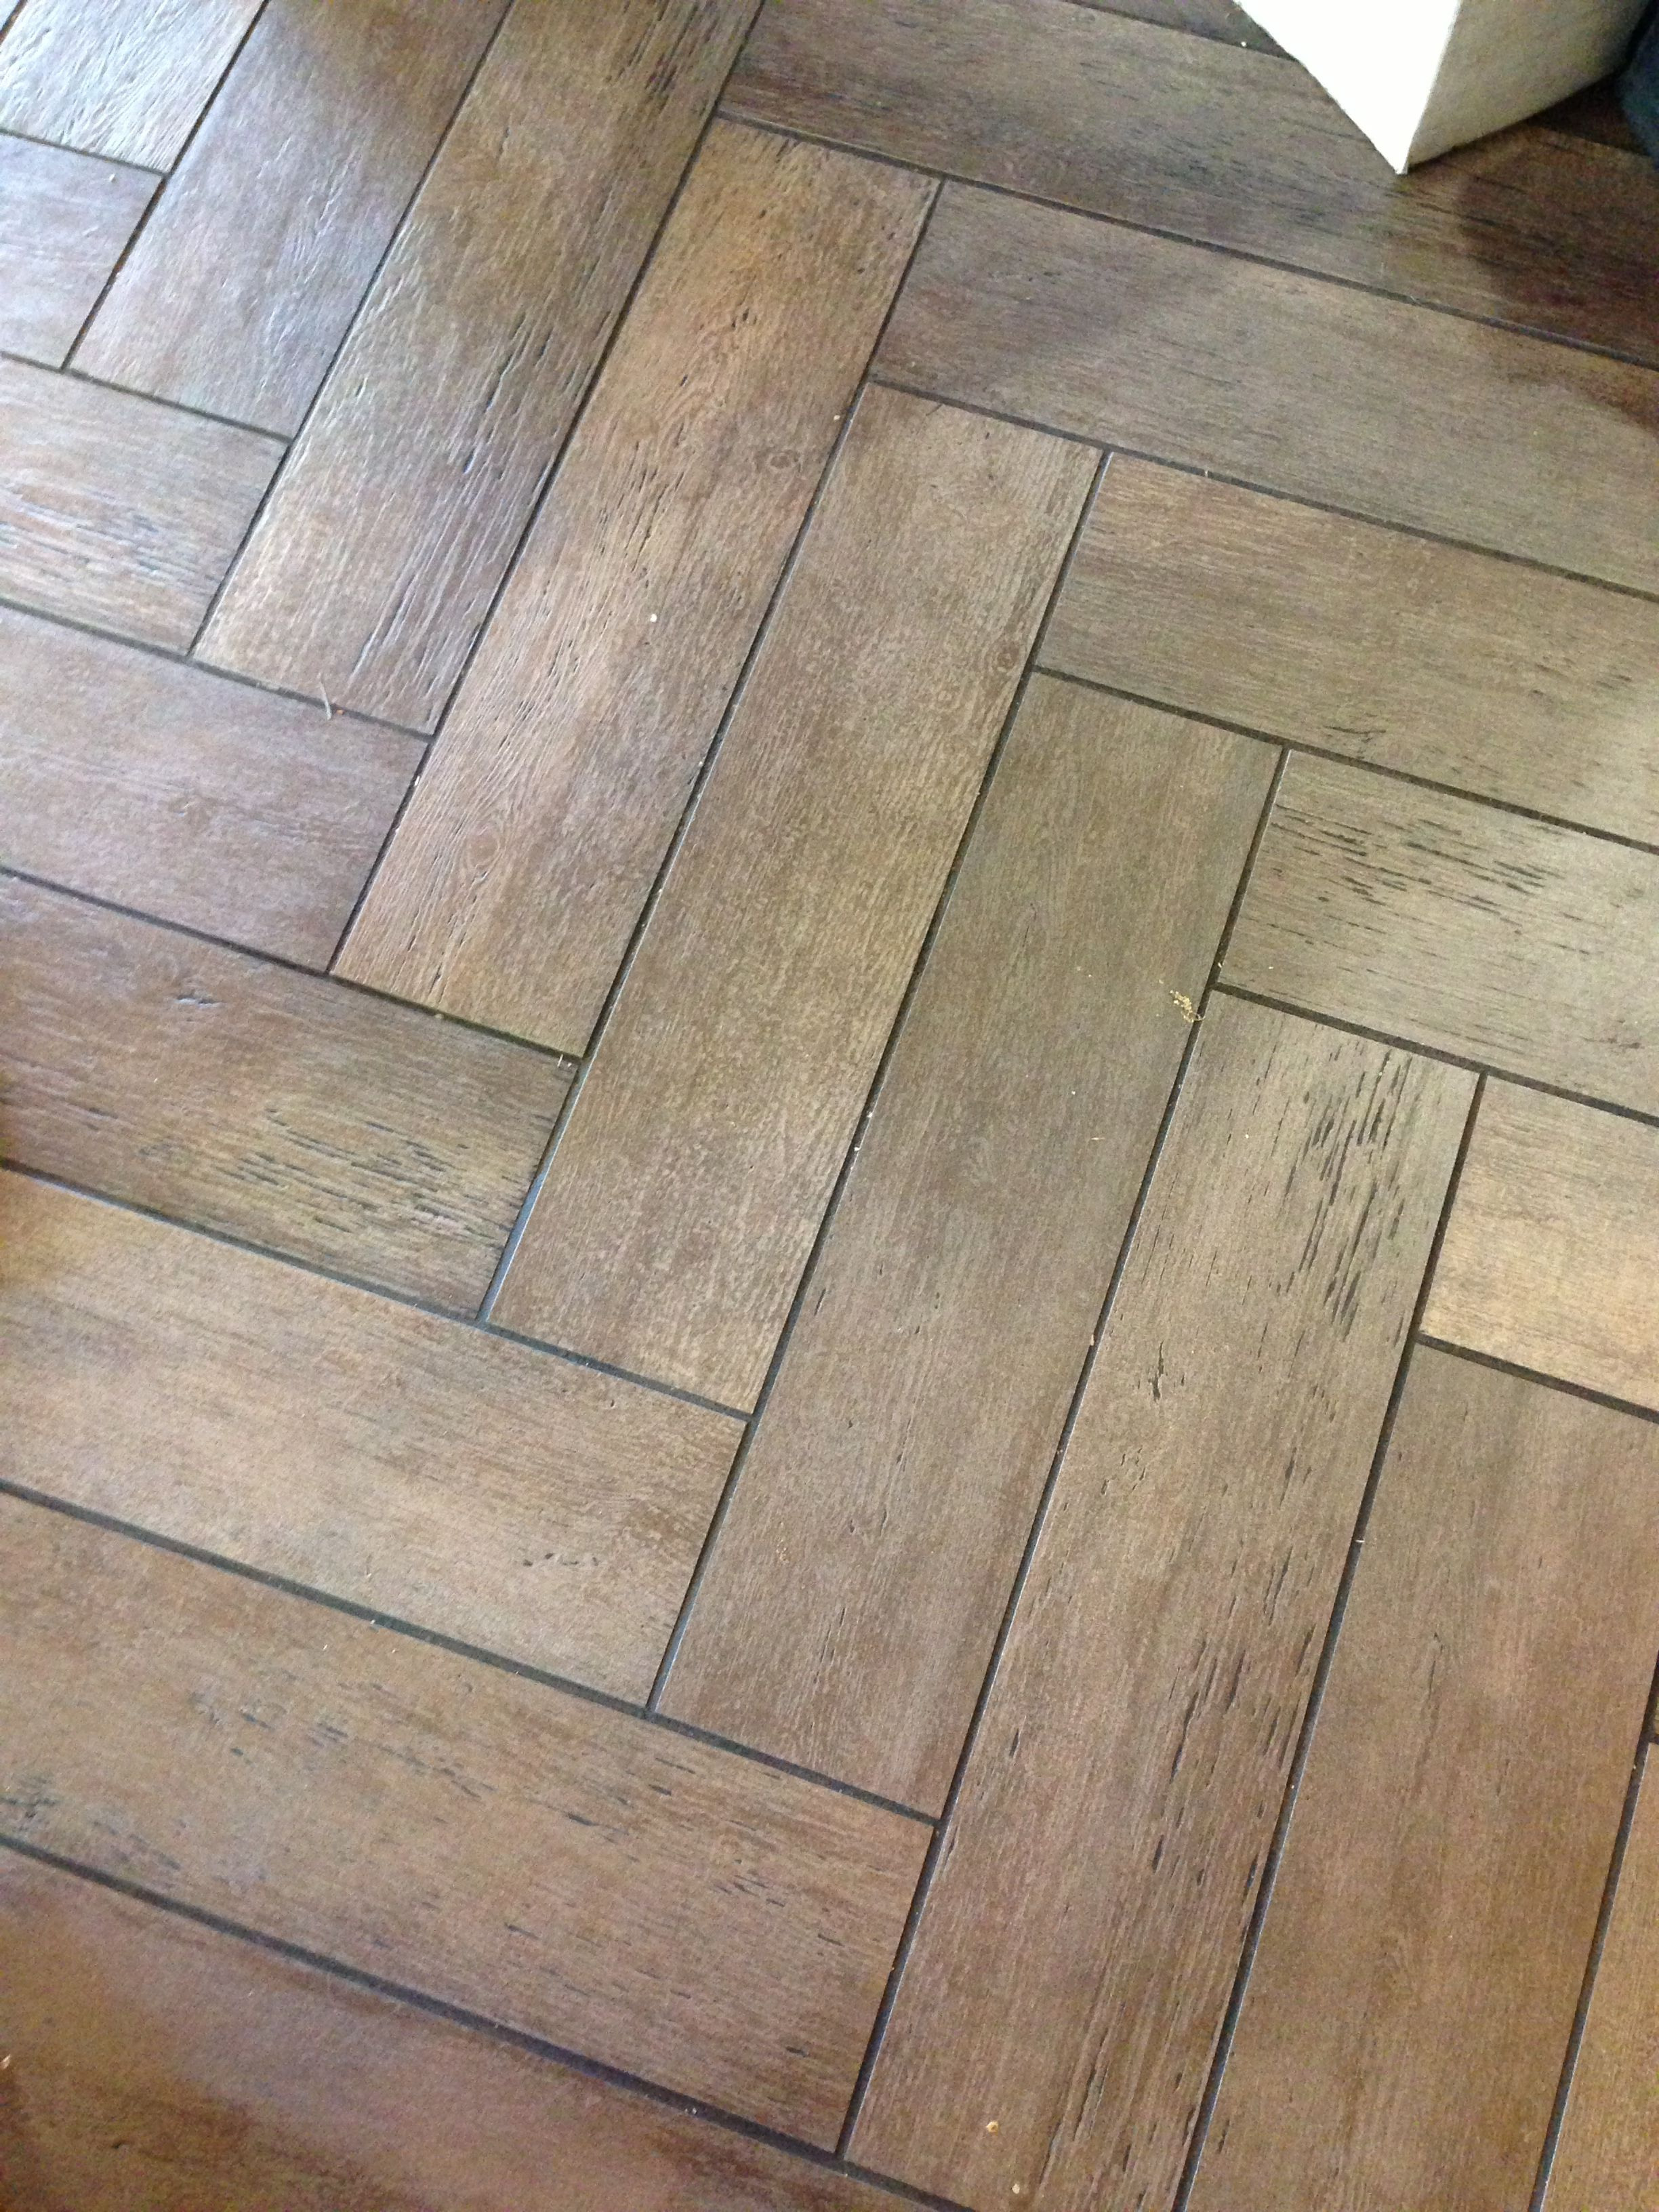 Tile Floor Faux Wood Flooring Faux Wood Tiles Wood Floor Design